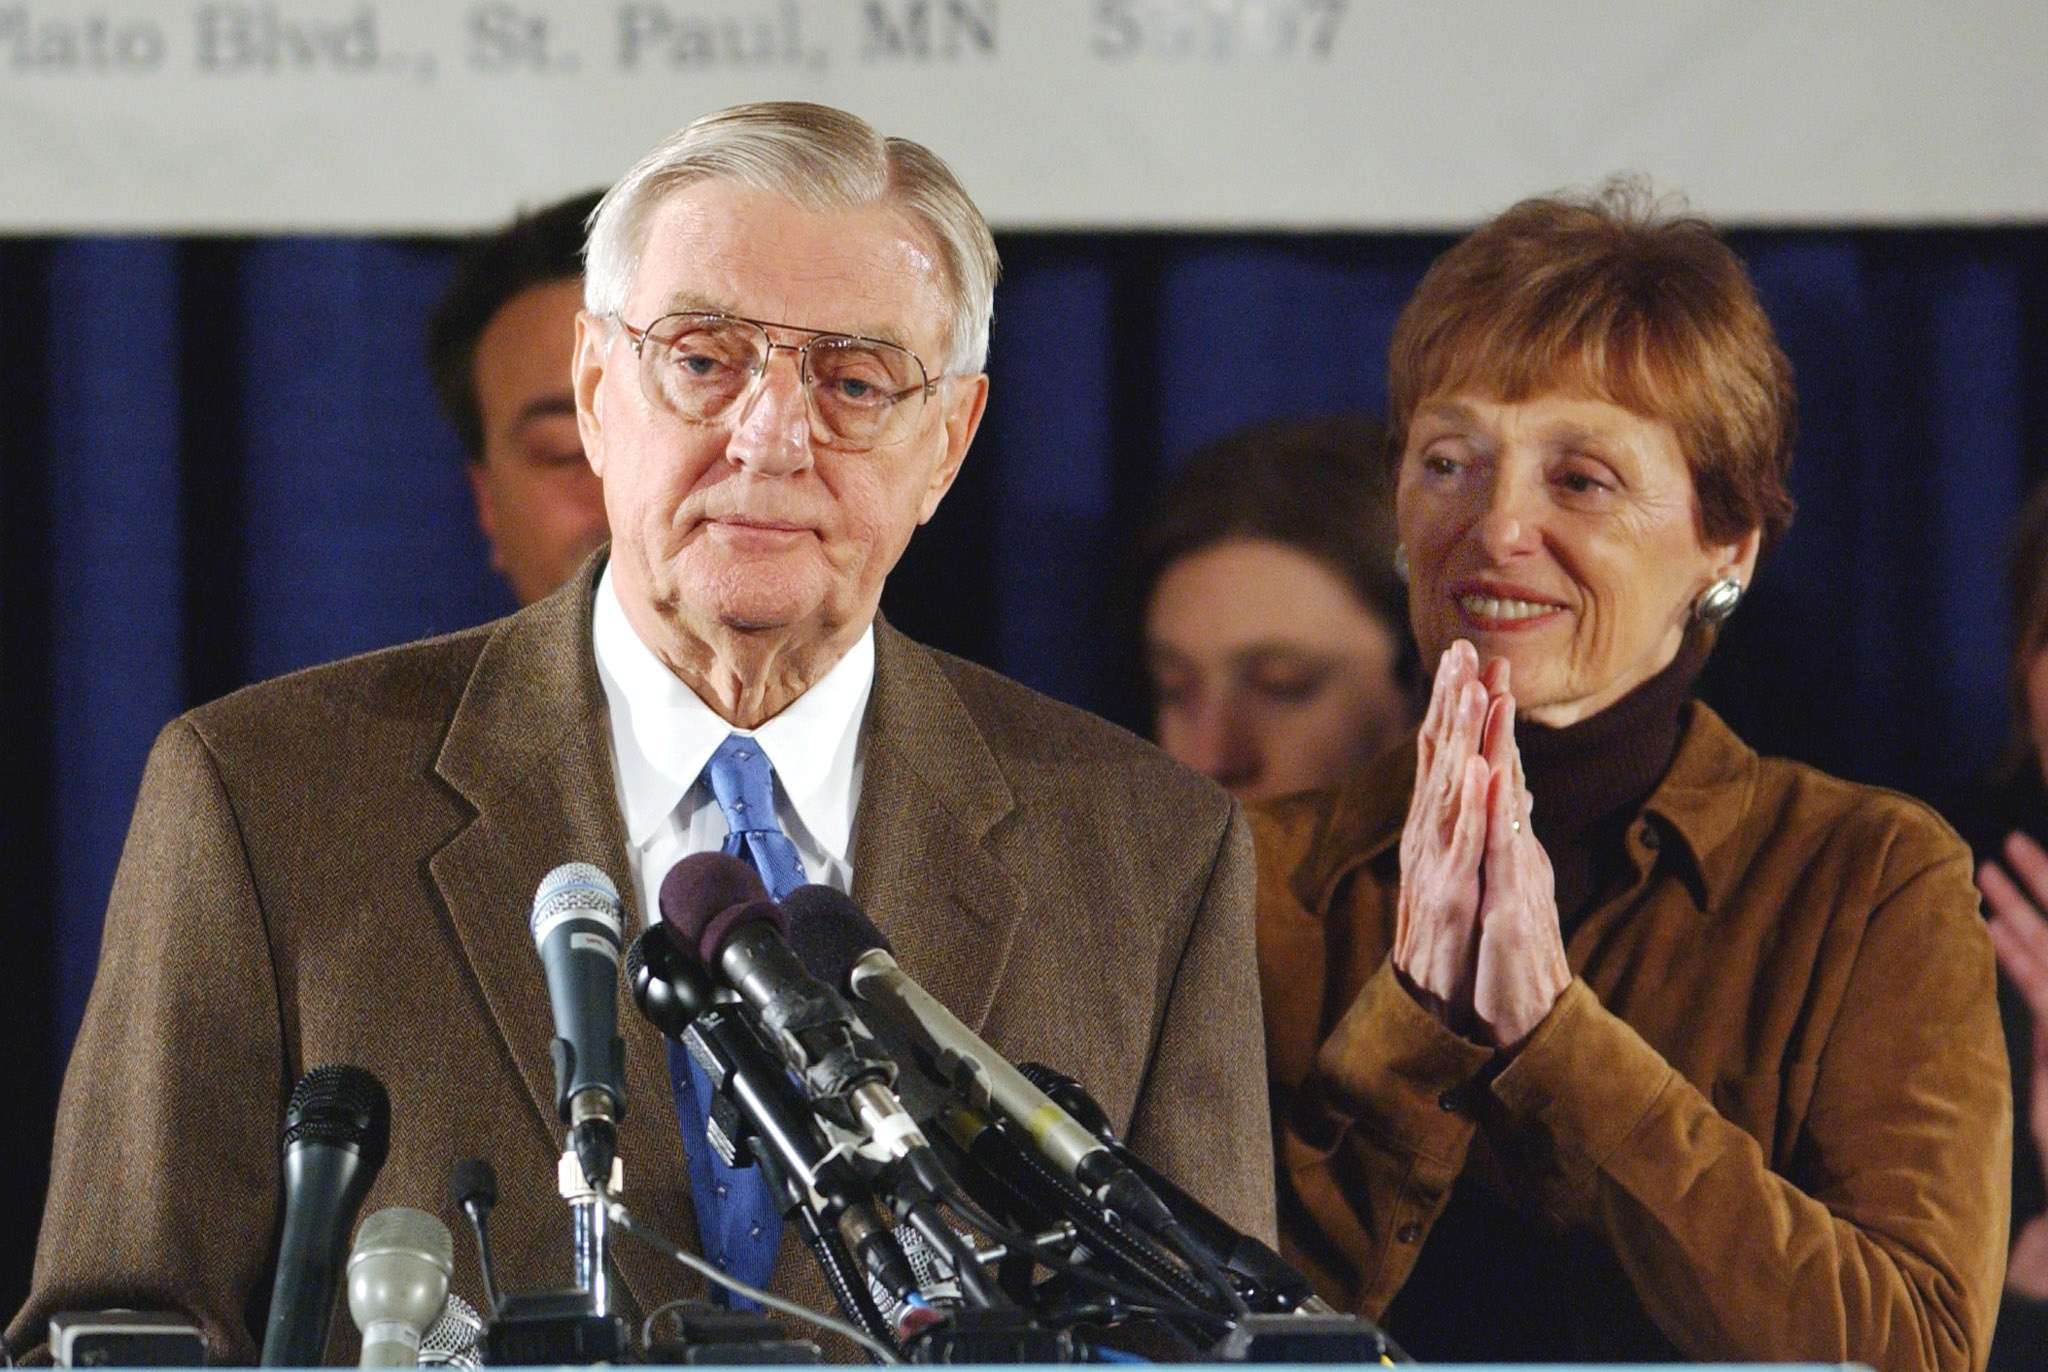 Democratic Senate candidate and former Vice President Walter Mondale stands at the podium with his wife Joan as he concedes to Republican Norm Coleman, November 6, 2002. REUTERS/Eric Miller